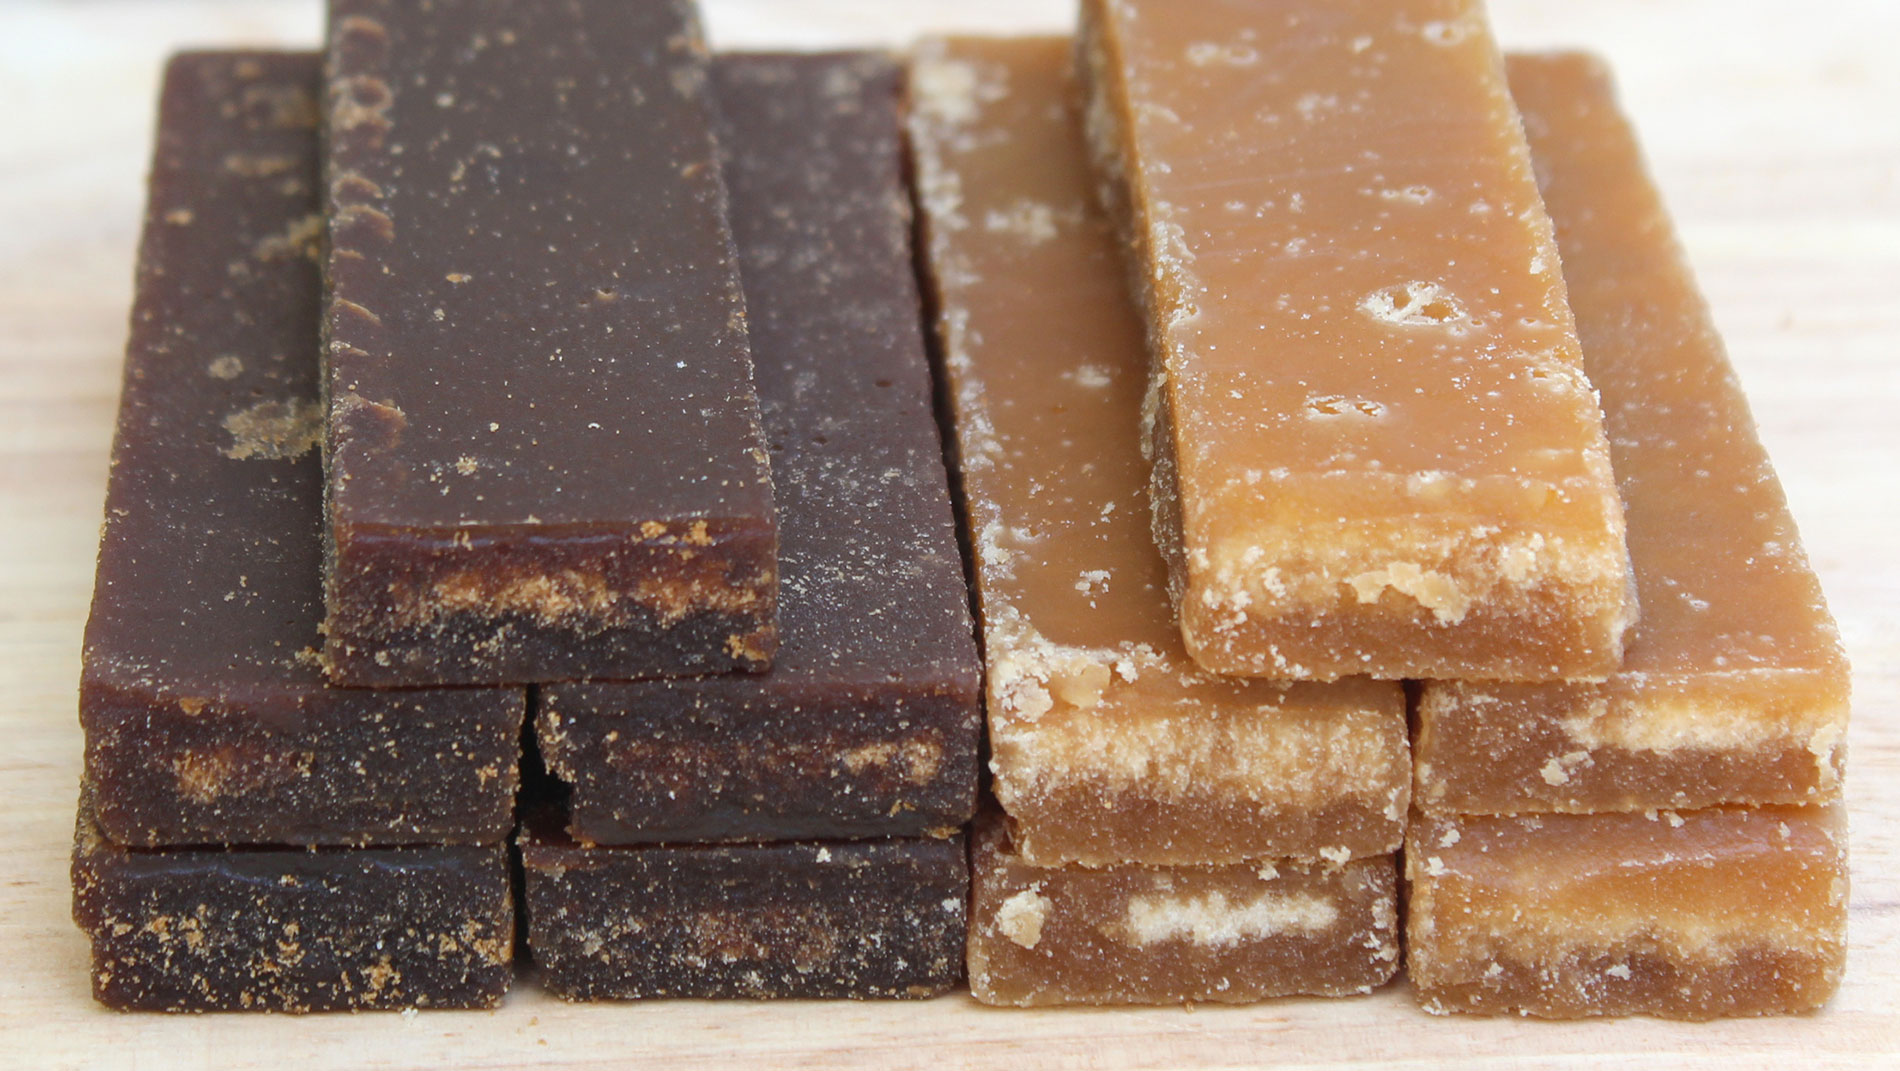 Brown Rock Sugar Bar vs Chinese Brown Sugar